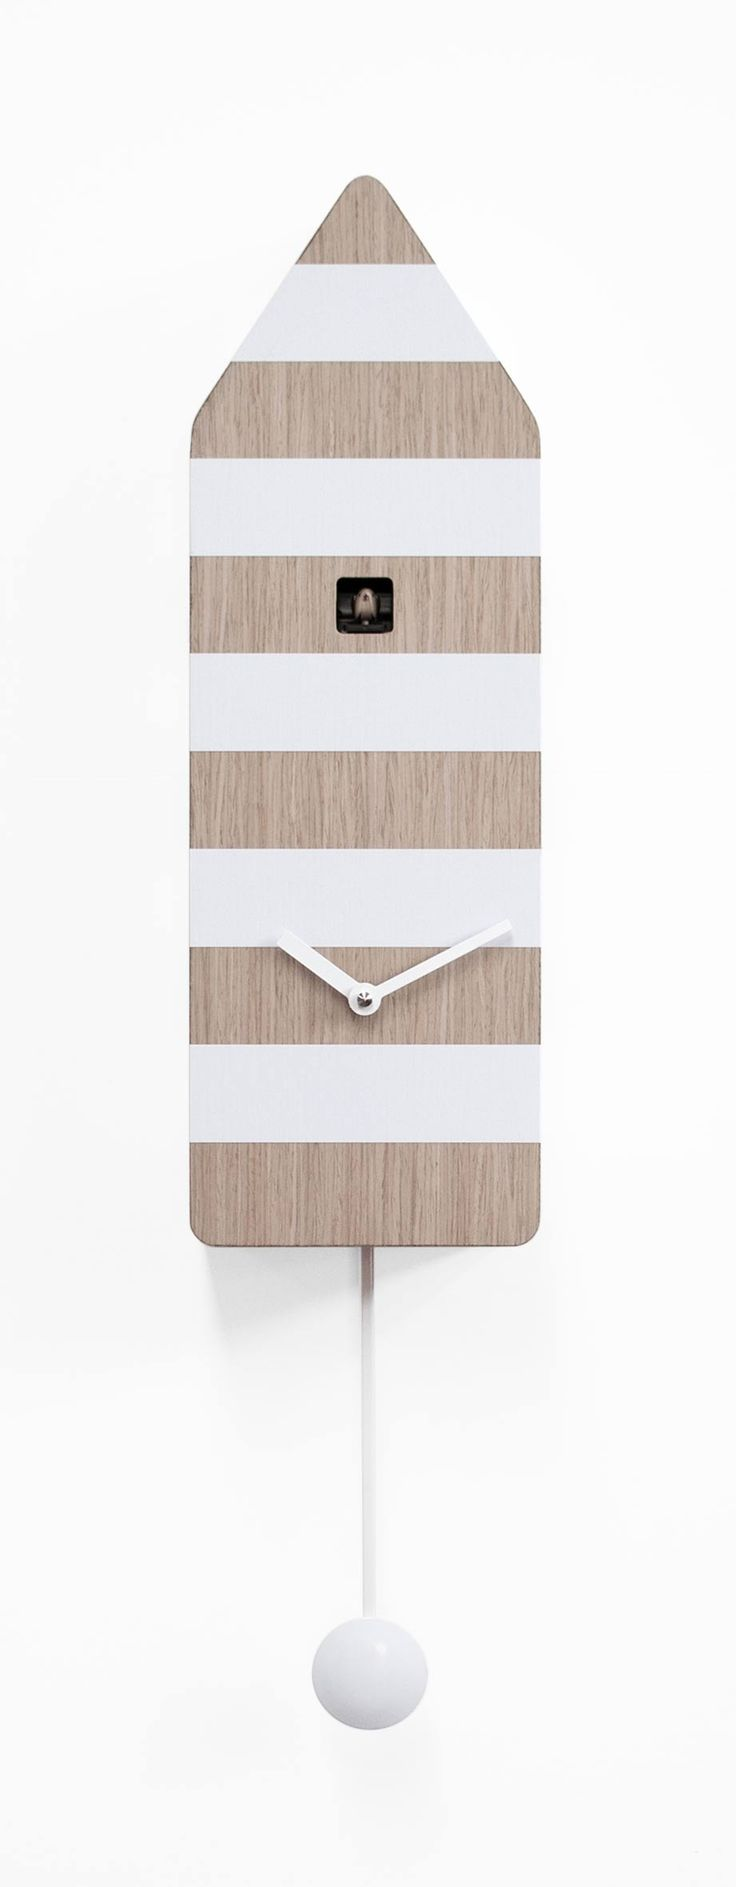 Capri it's a modern design cuckoo clock, in painted wood with horizontal colored bands. The cuckoo by bright colors and clean lines reminiscent of the cabins bathing facilities but with the typical lighthouse colors. A simple object that contains so many emotions and memories.